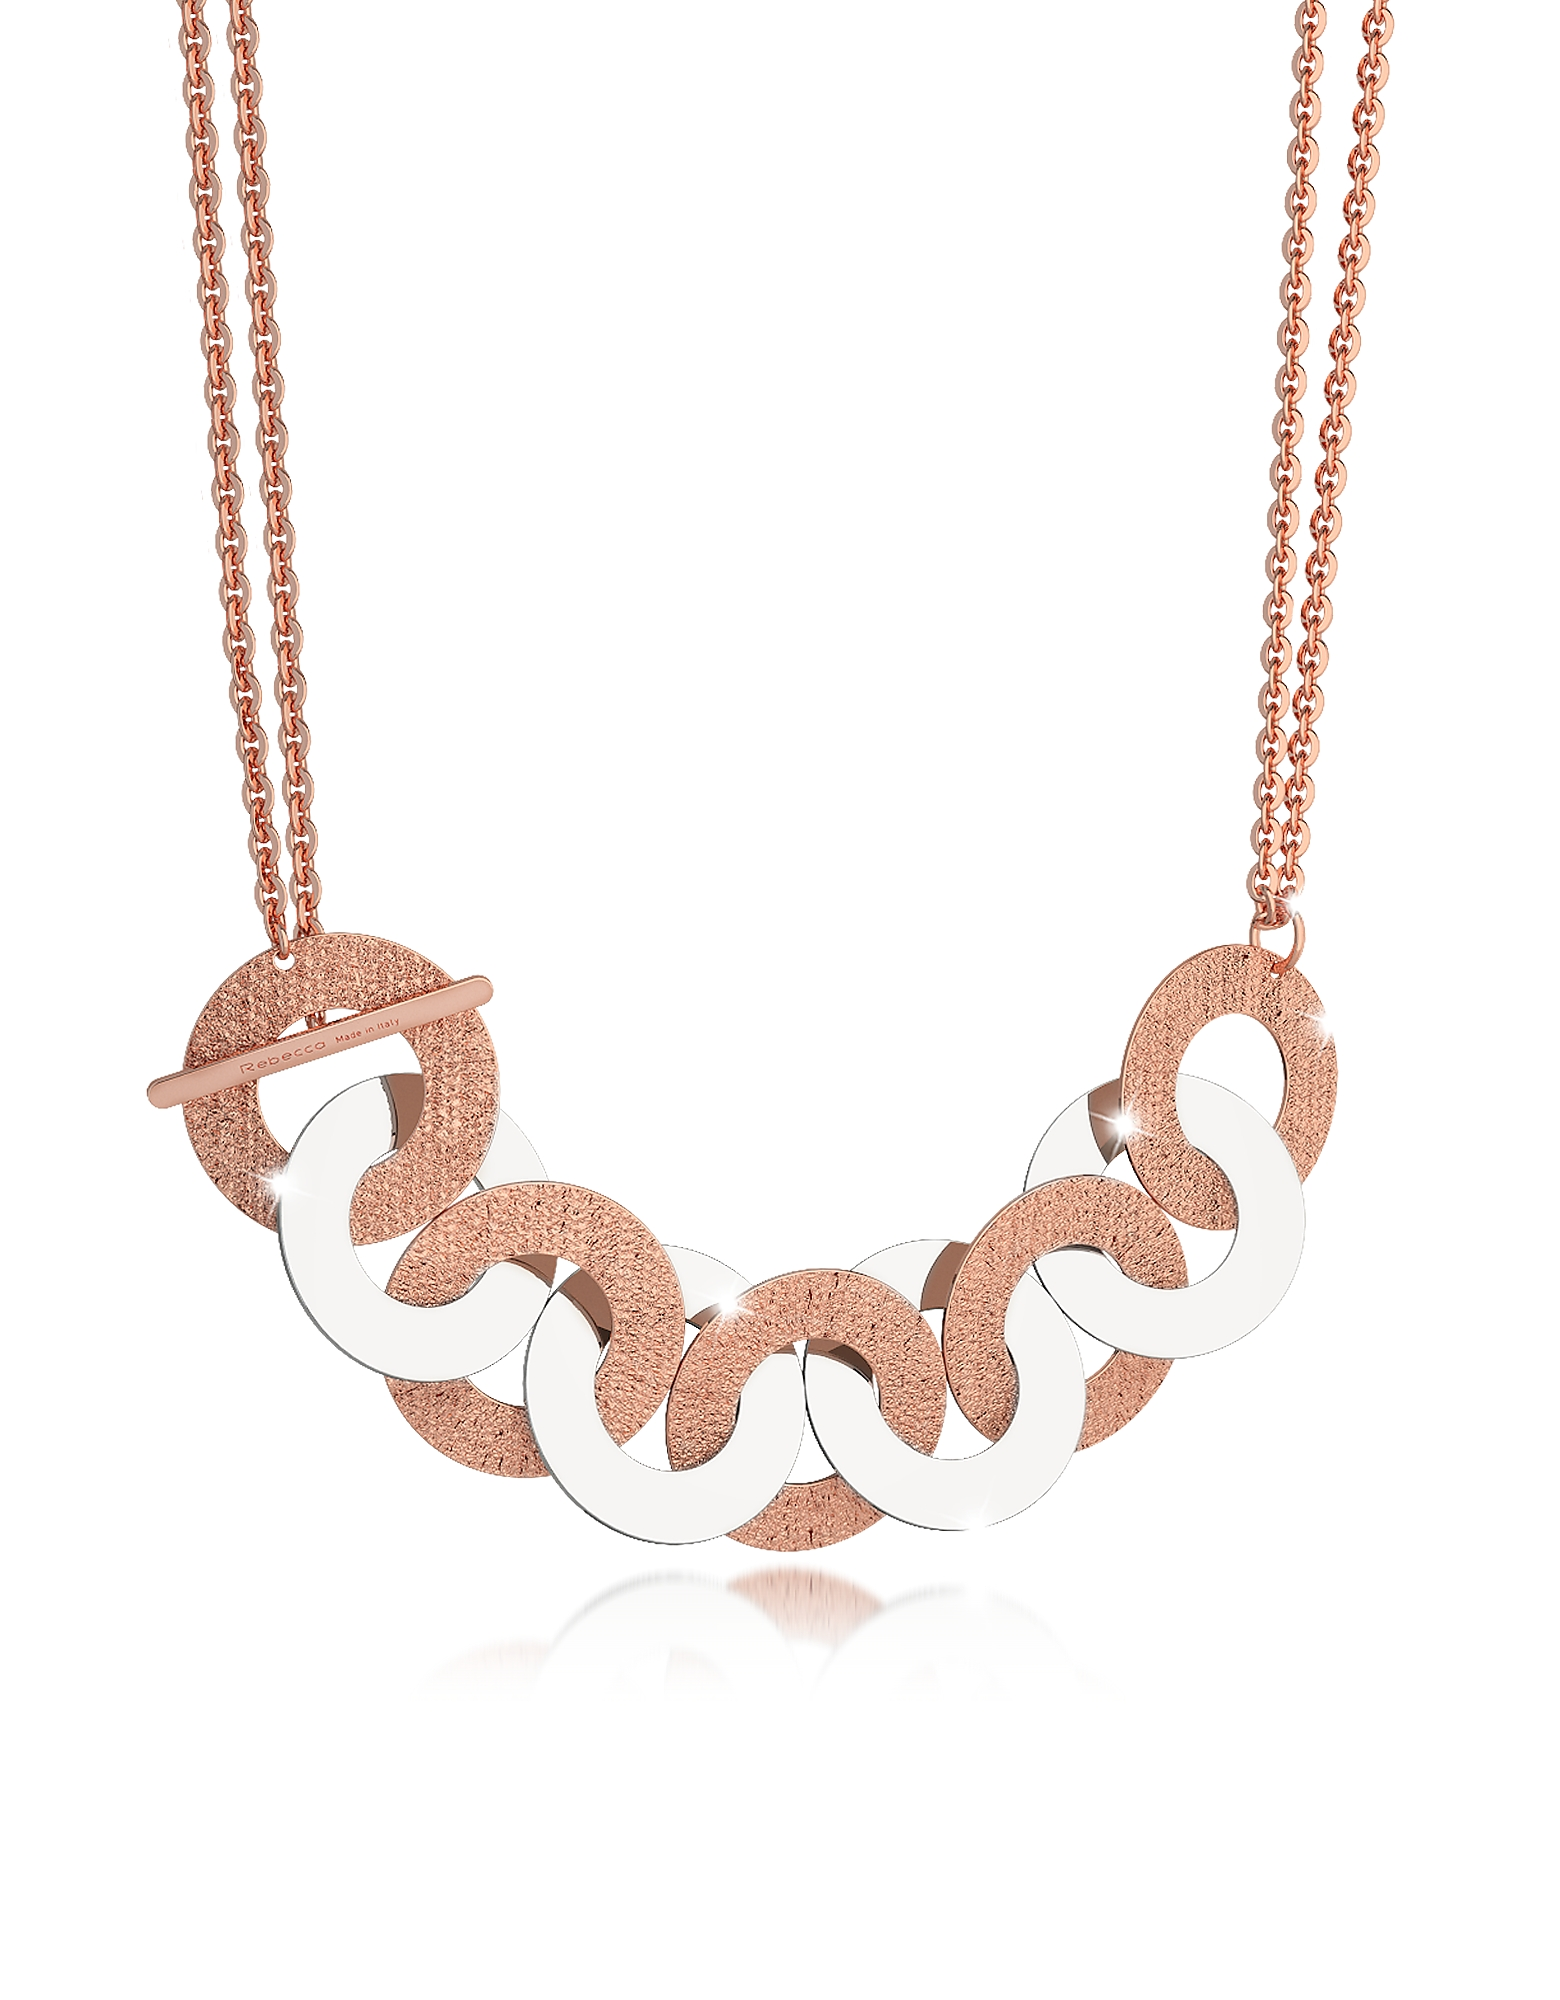 Rebecca Necklaces, R-Zero Rose Gold Over Bronze and Steel Maxi Chain Necklace